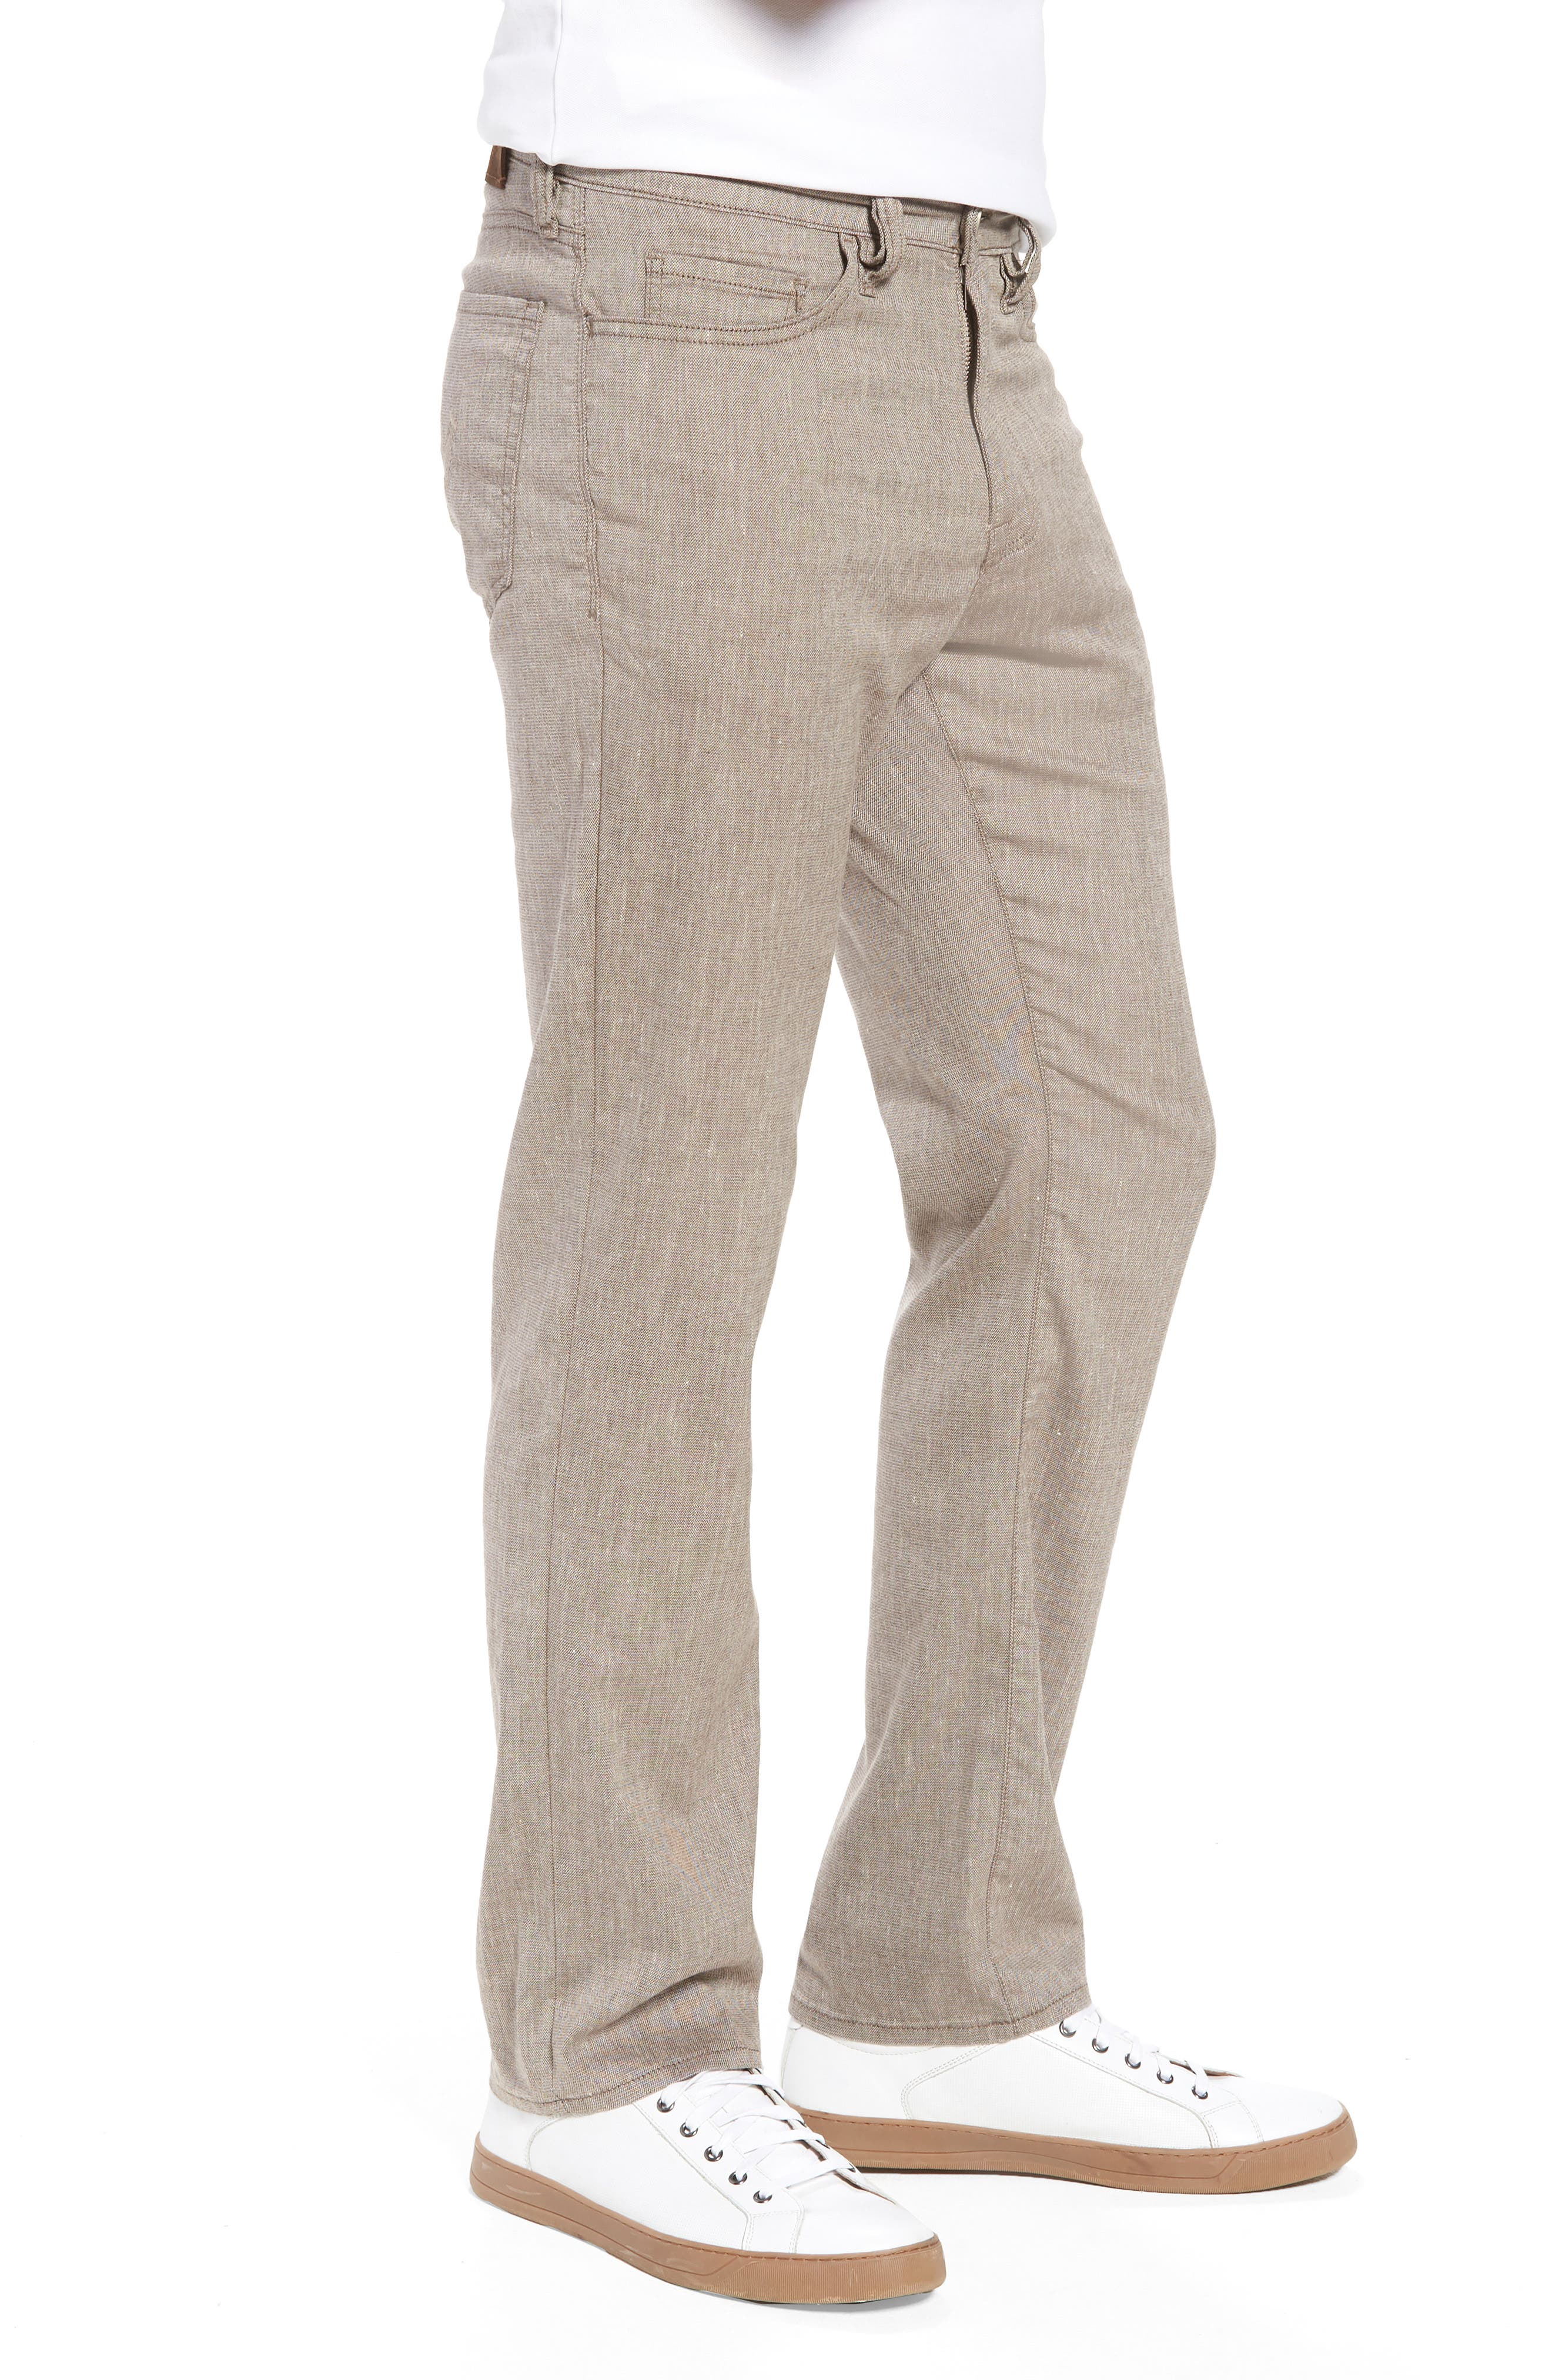 Charisma Relaxed Fit Pants,                             Alternate thumbnail 3, color,                             200